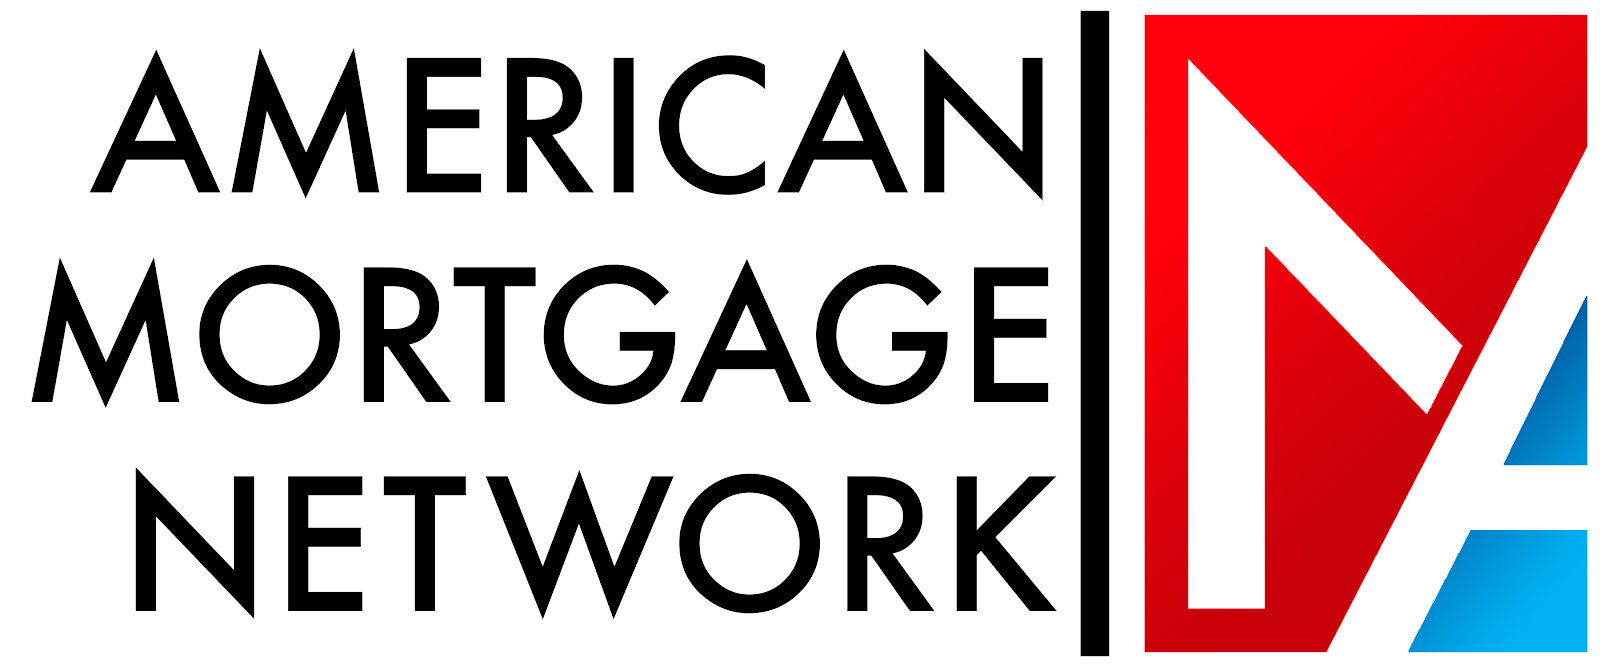 American Mortgage Network